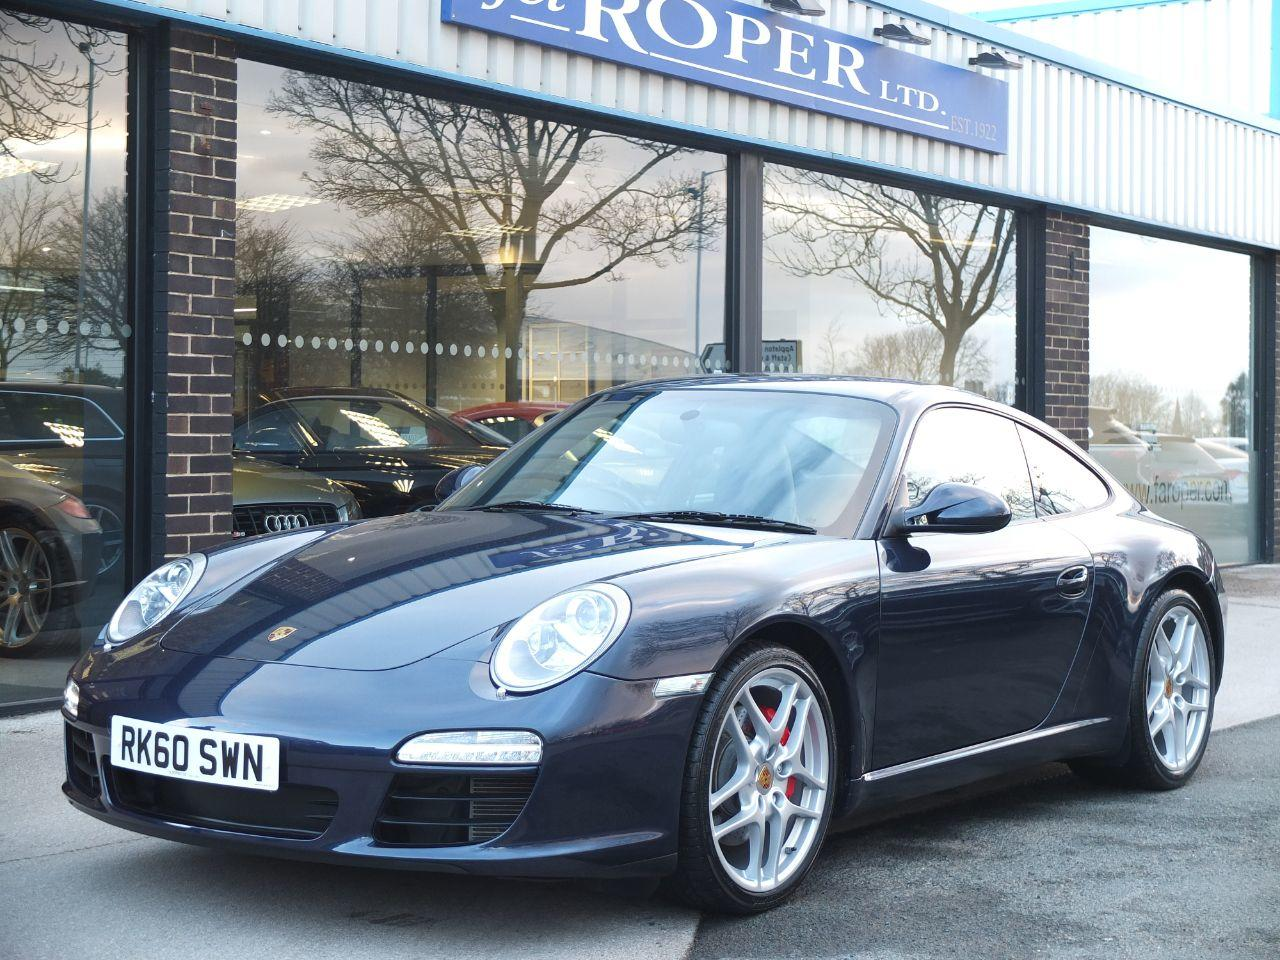 Porsche 911 997 Carrera 3.8 S Gen II +++Spc Coupe Petrol Dark Blue Metallic